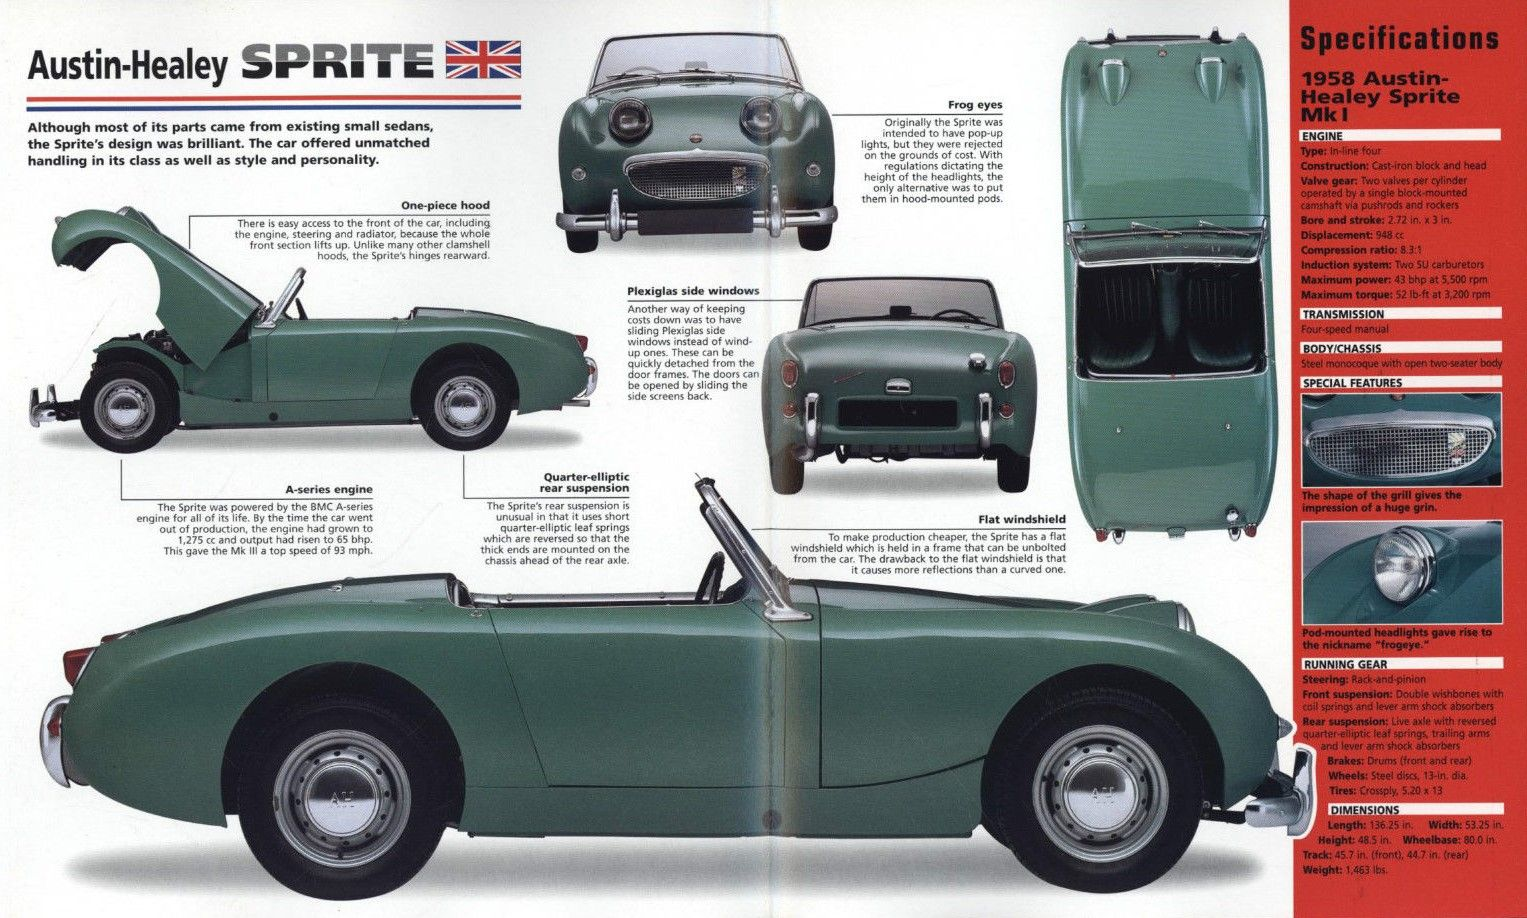 Austin-Healey Sprite Mk1 advertisement